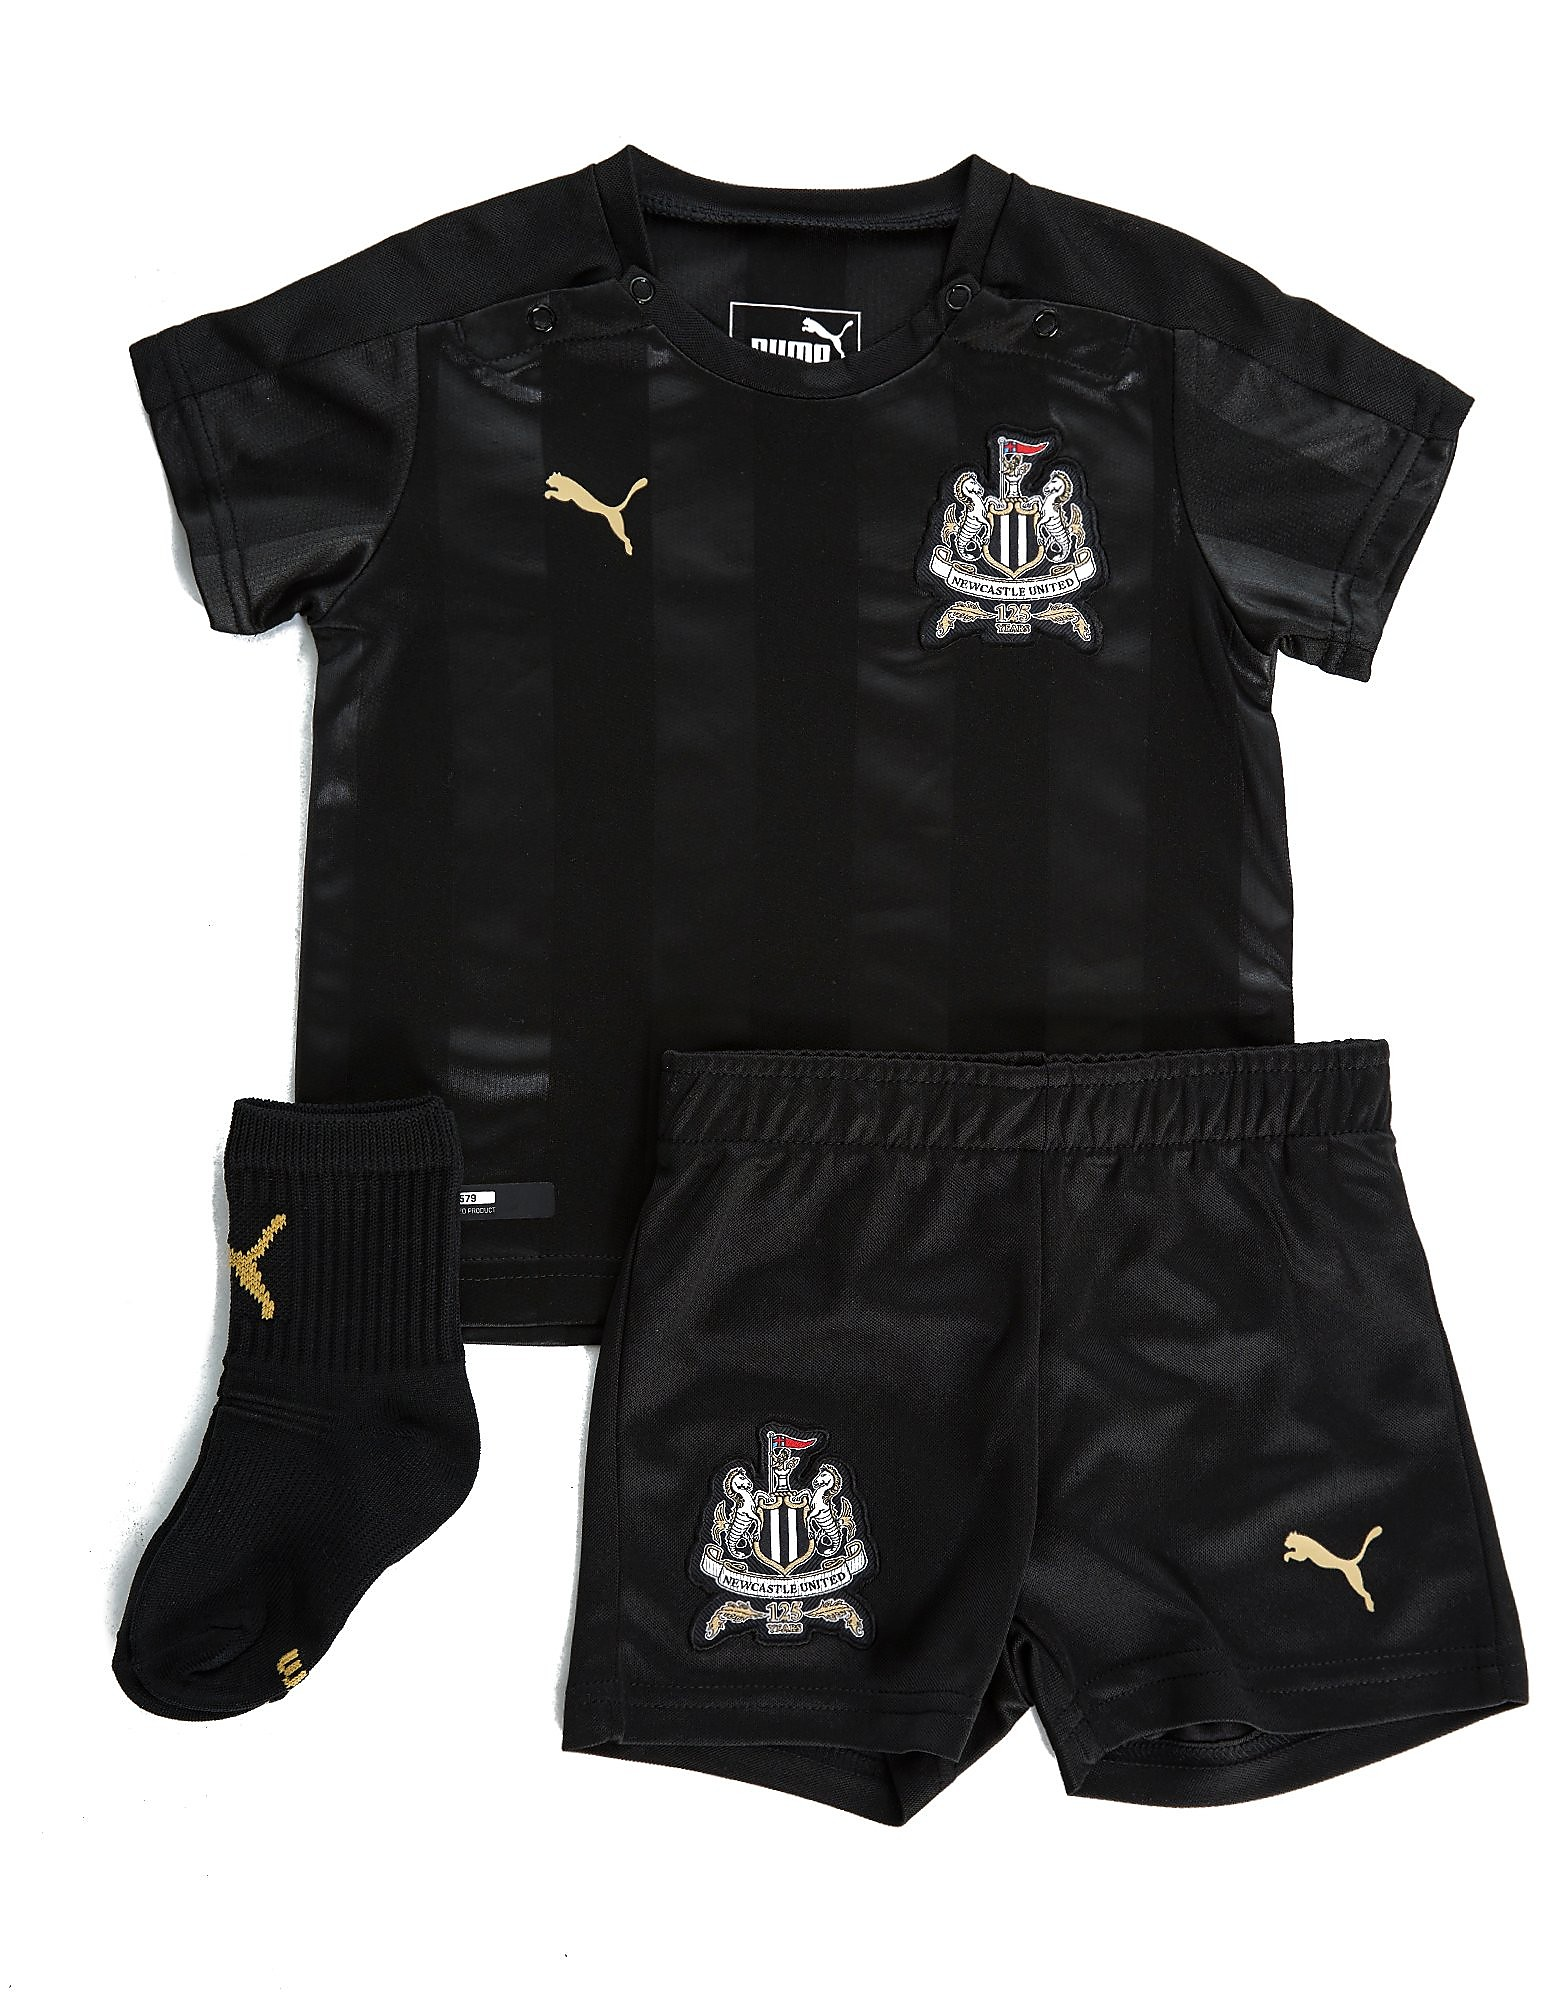 PUMA Newcastle United 2017/18 Third Kit Infant